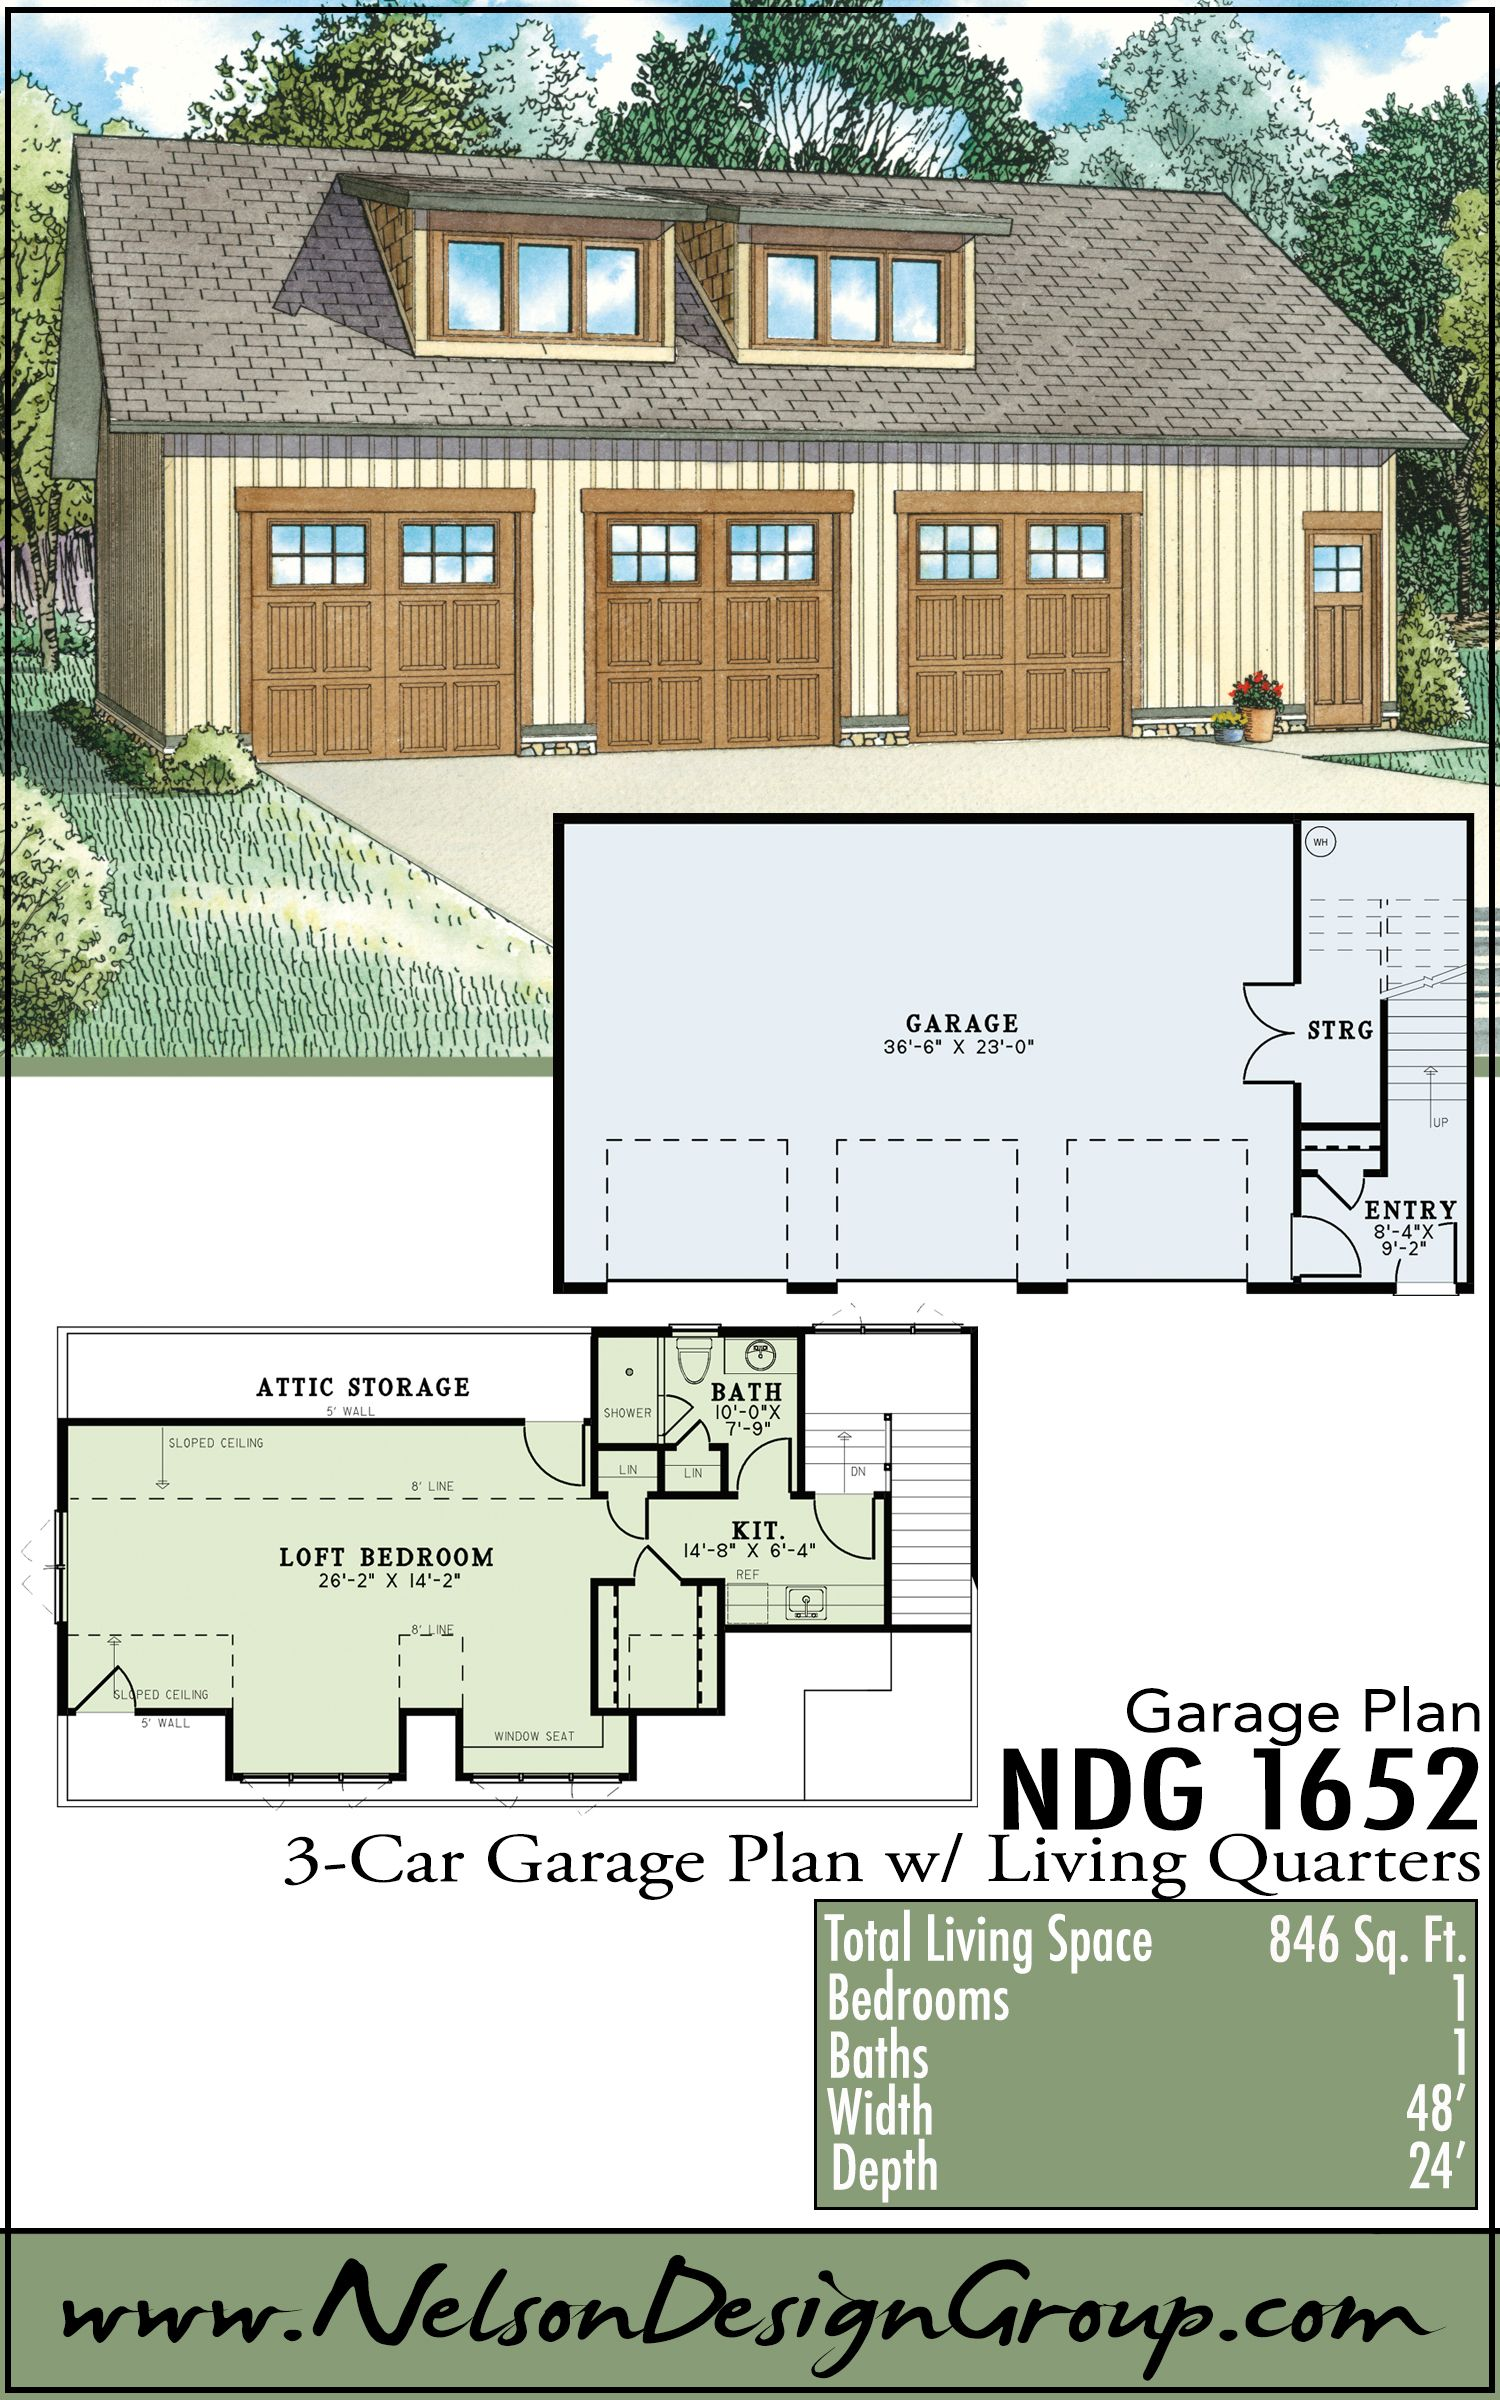 Superbe 3 Car Garage Plan With Side Entrance Living Quarters | 1652. Pool House ...